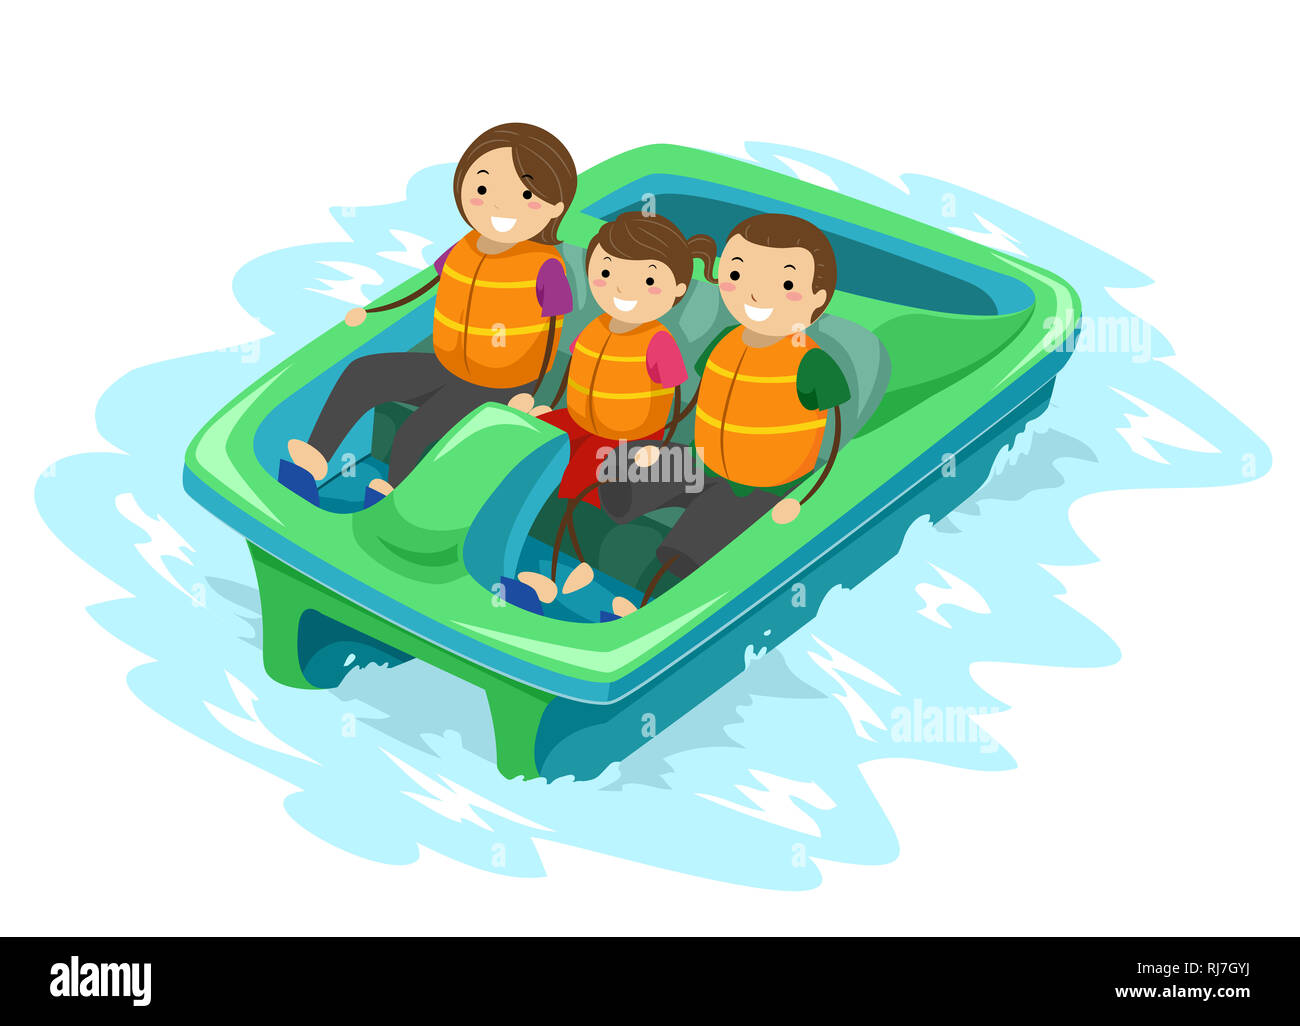 Illustration of a Stickman Kid Girl with Parents Riding a Paddle Boat in the Park - Stock Image